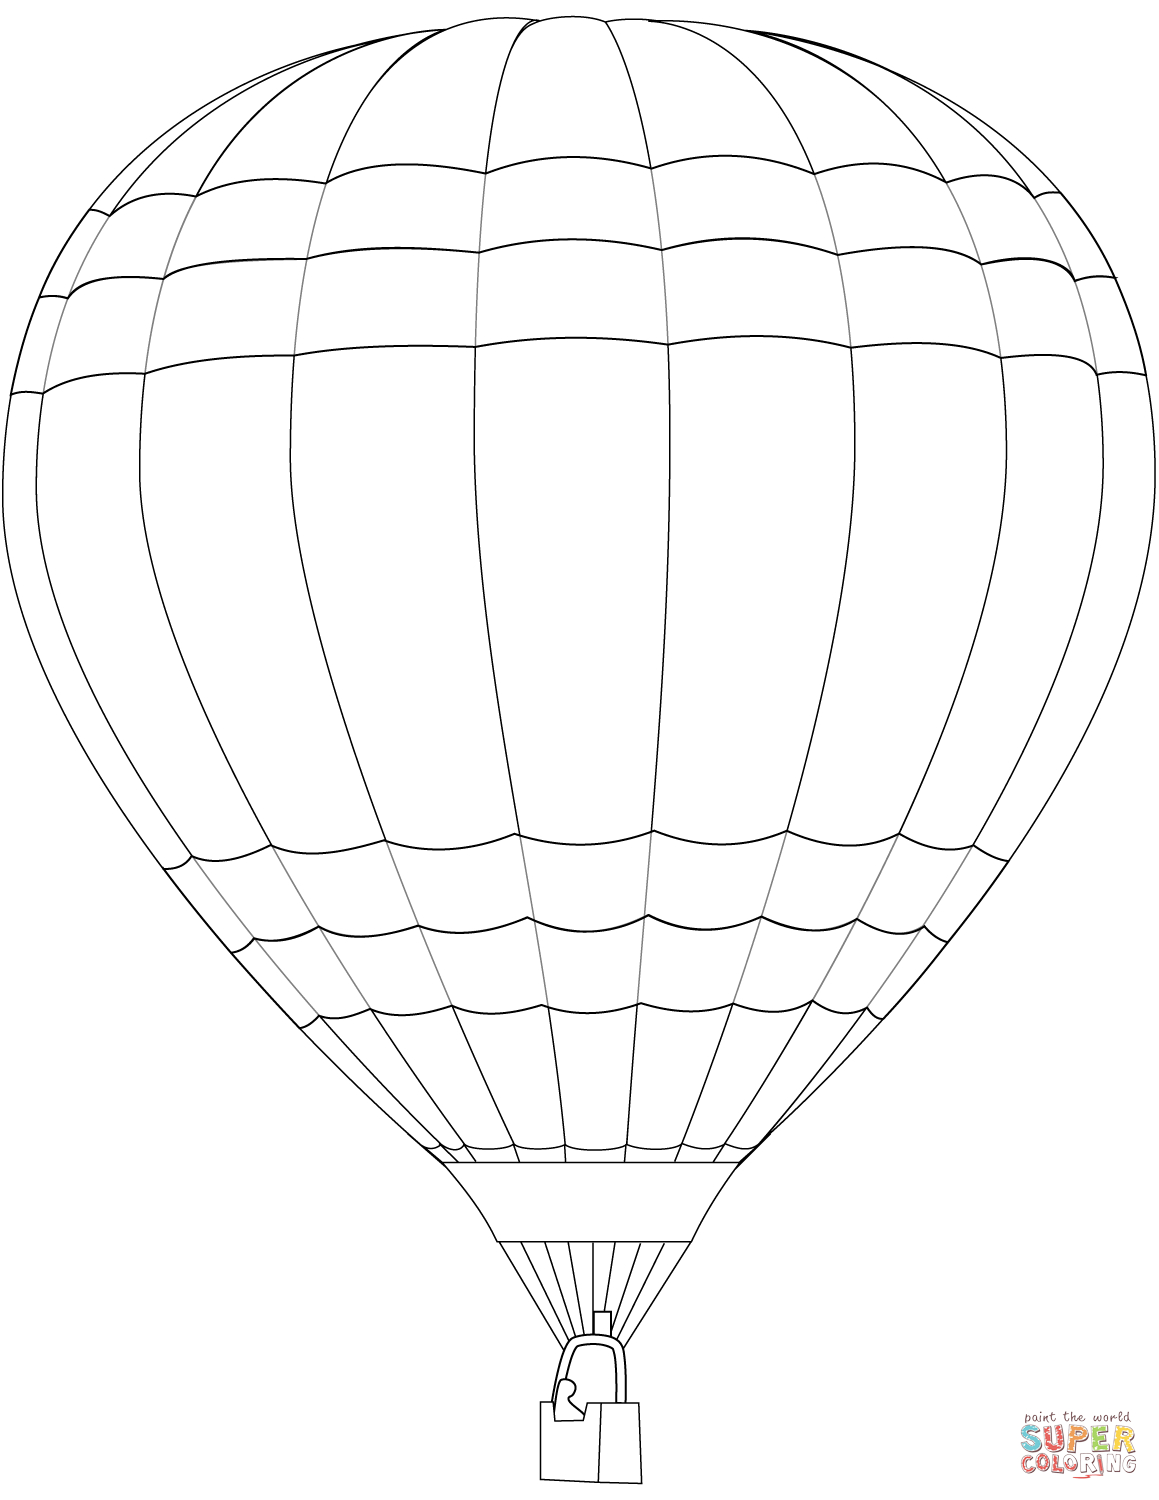 Hot Air Balloon Coloring Page to Print Of Fresh Hot Air Balloons Coloring Pages Collection to Print